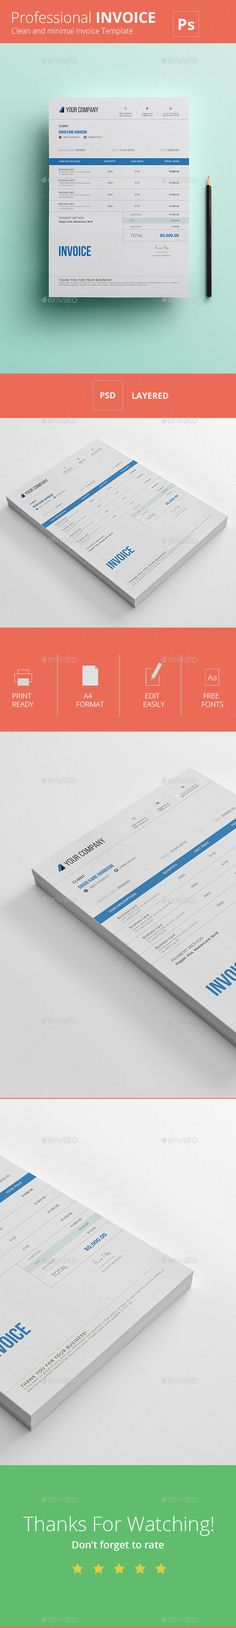 Proposal Template Suisse Design with Invoice on Behance identity - invoice designs